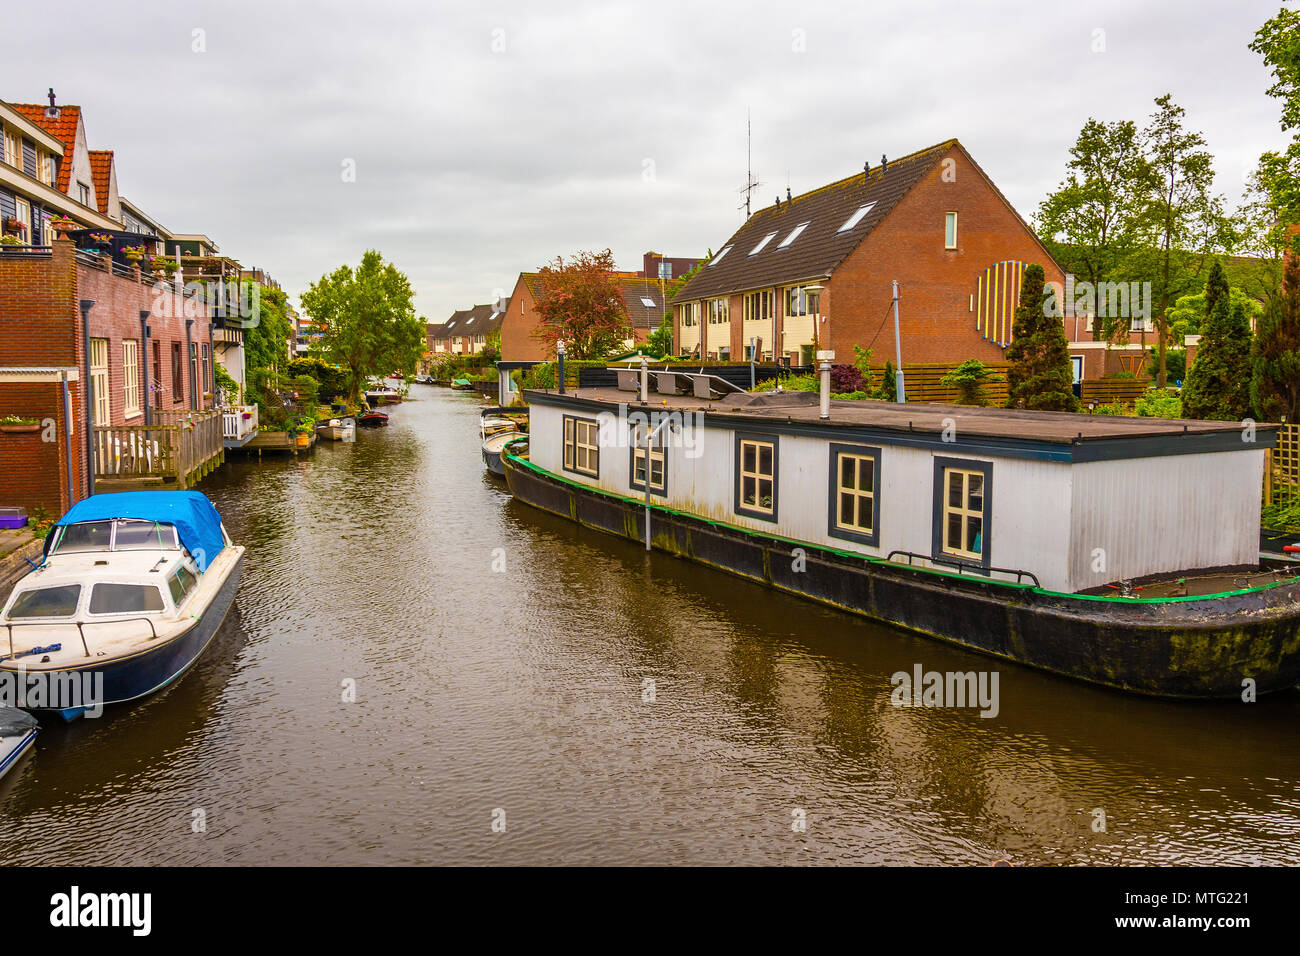 canal and different types of housing surrounding it in a suburb of the city of alkmaar netherlands holland - Stock Image